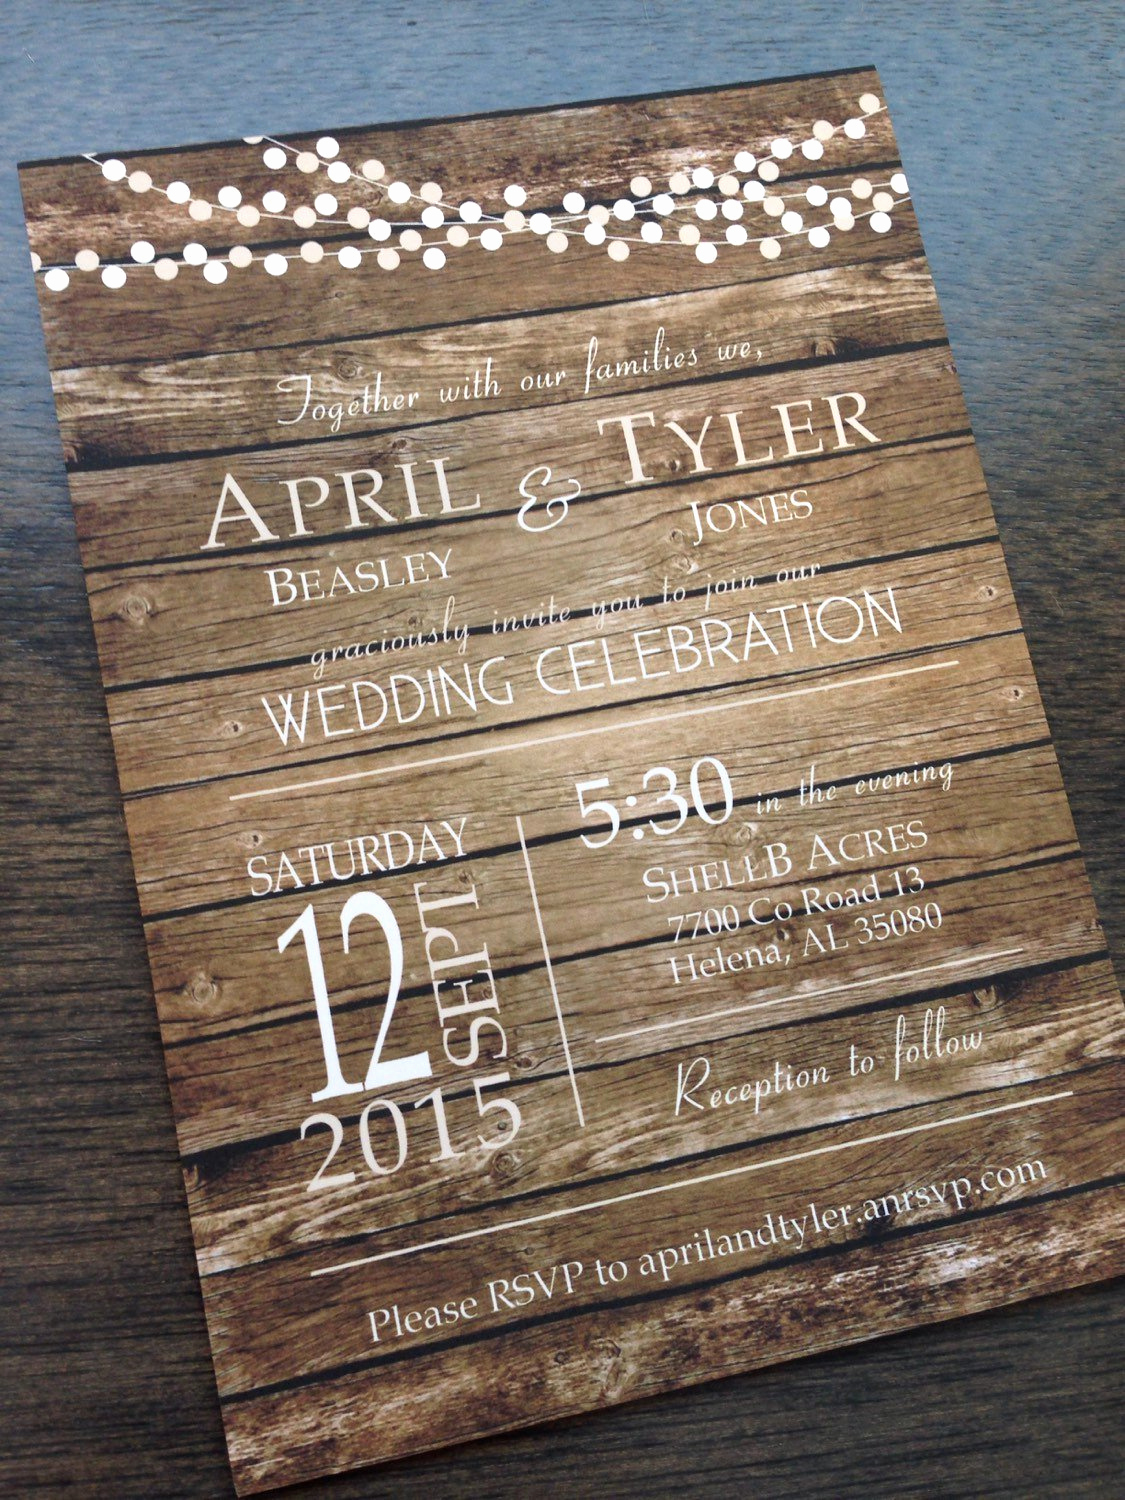 Rustic Wedding Invitation Background Lovely Wedding Party with Rustic Country Wedding Invitations